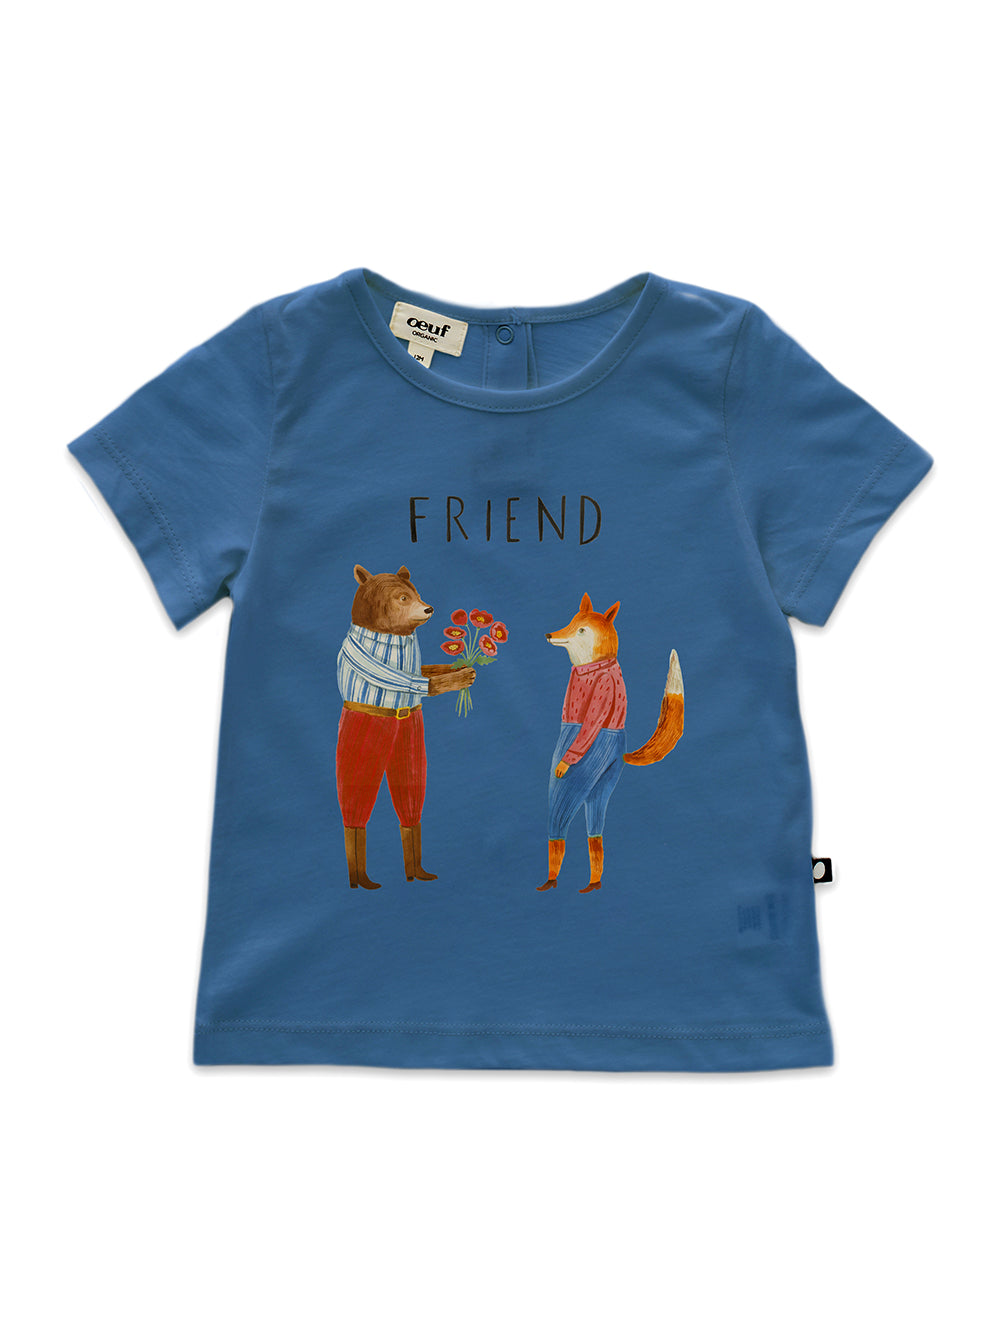 Friend Baby T-Shirt